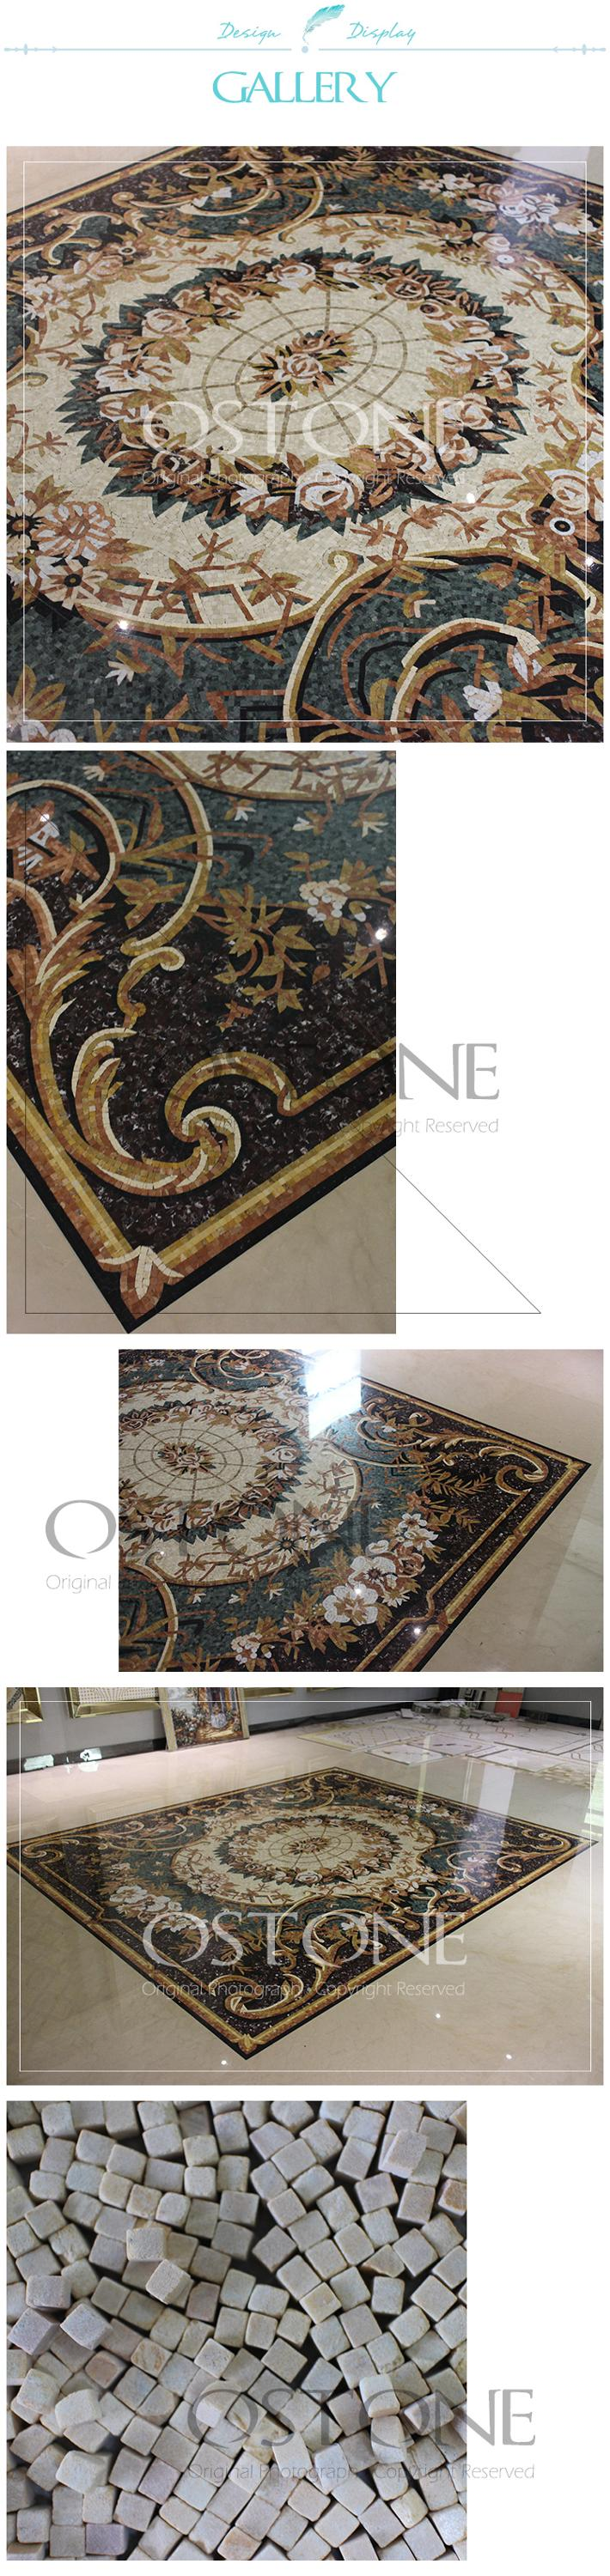 Attractive design flower carpet pattern marble mosaic decorative attractive design flower carpet pattern marble mosaic decorative floor tile medallions dailygadgetfo Choice Image